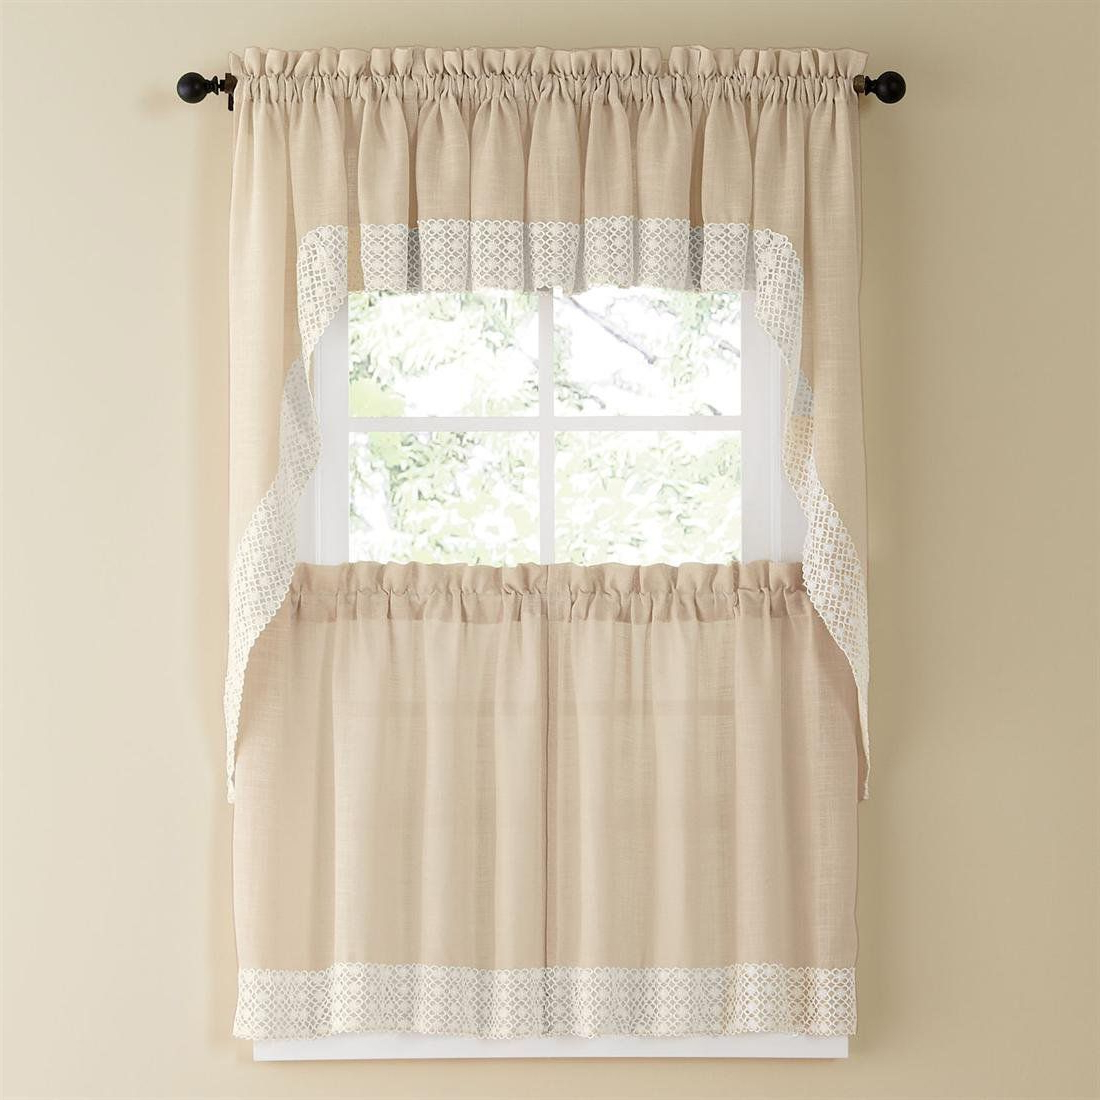 Featured Photo of Country Style Curtain Parts With White Daisy Lace Accent